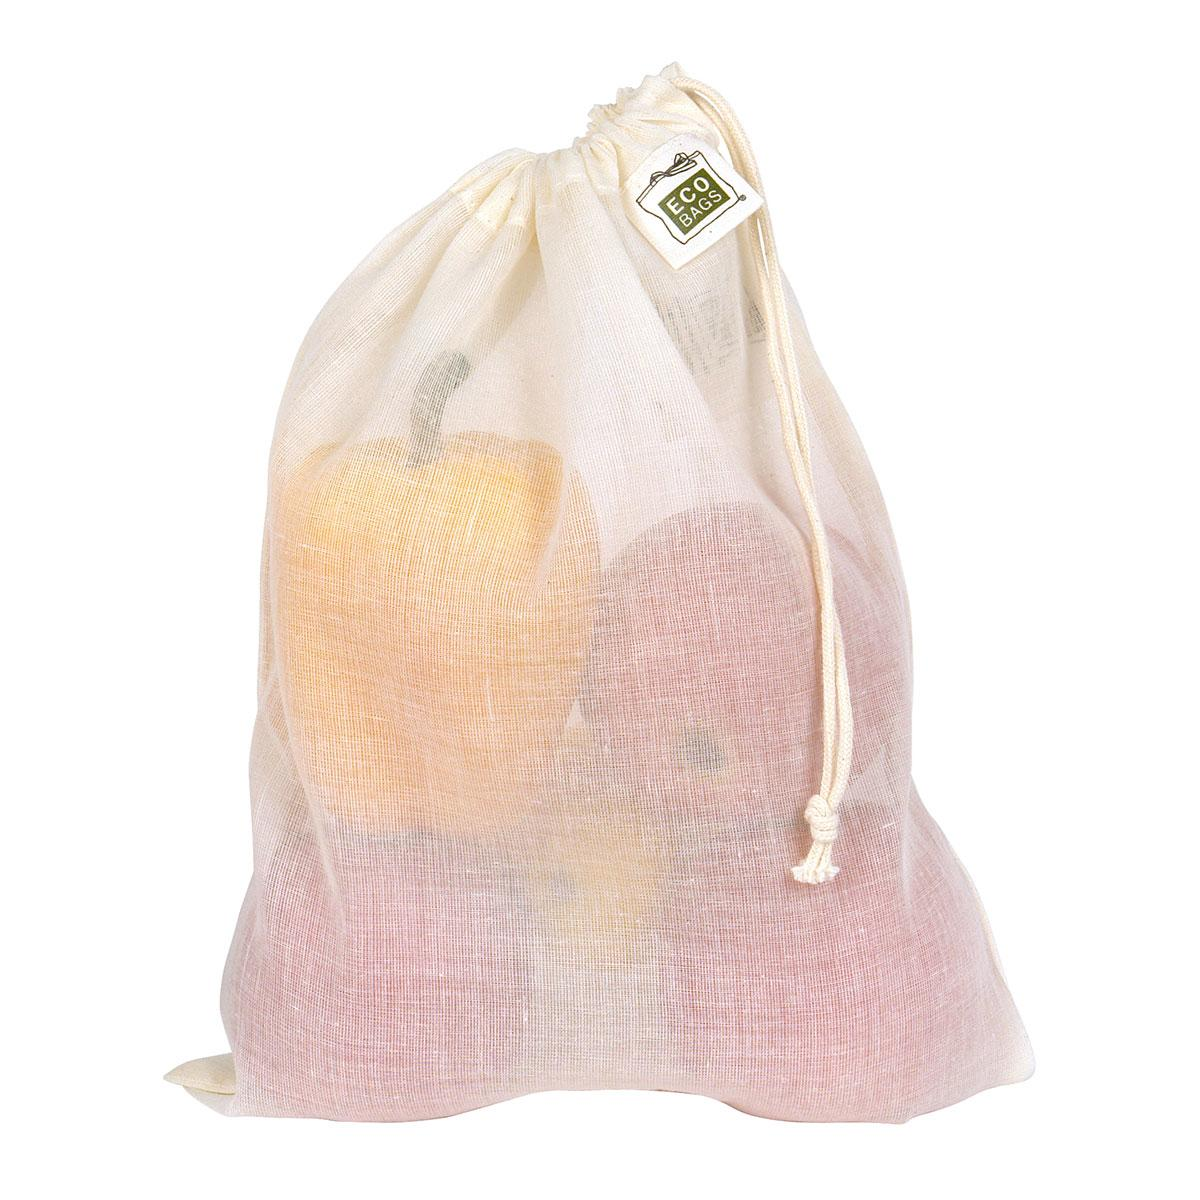 ECOBAGS Natural Cotton Grocery Bag - Medium